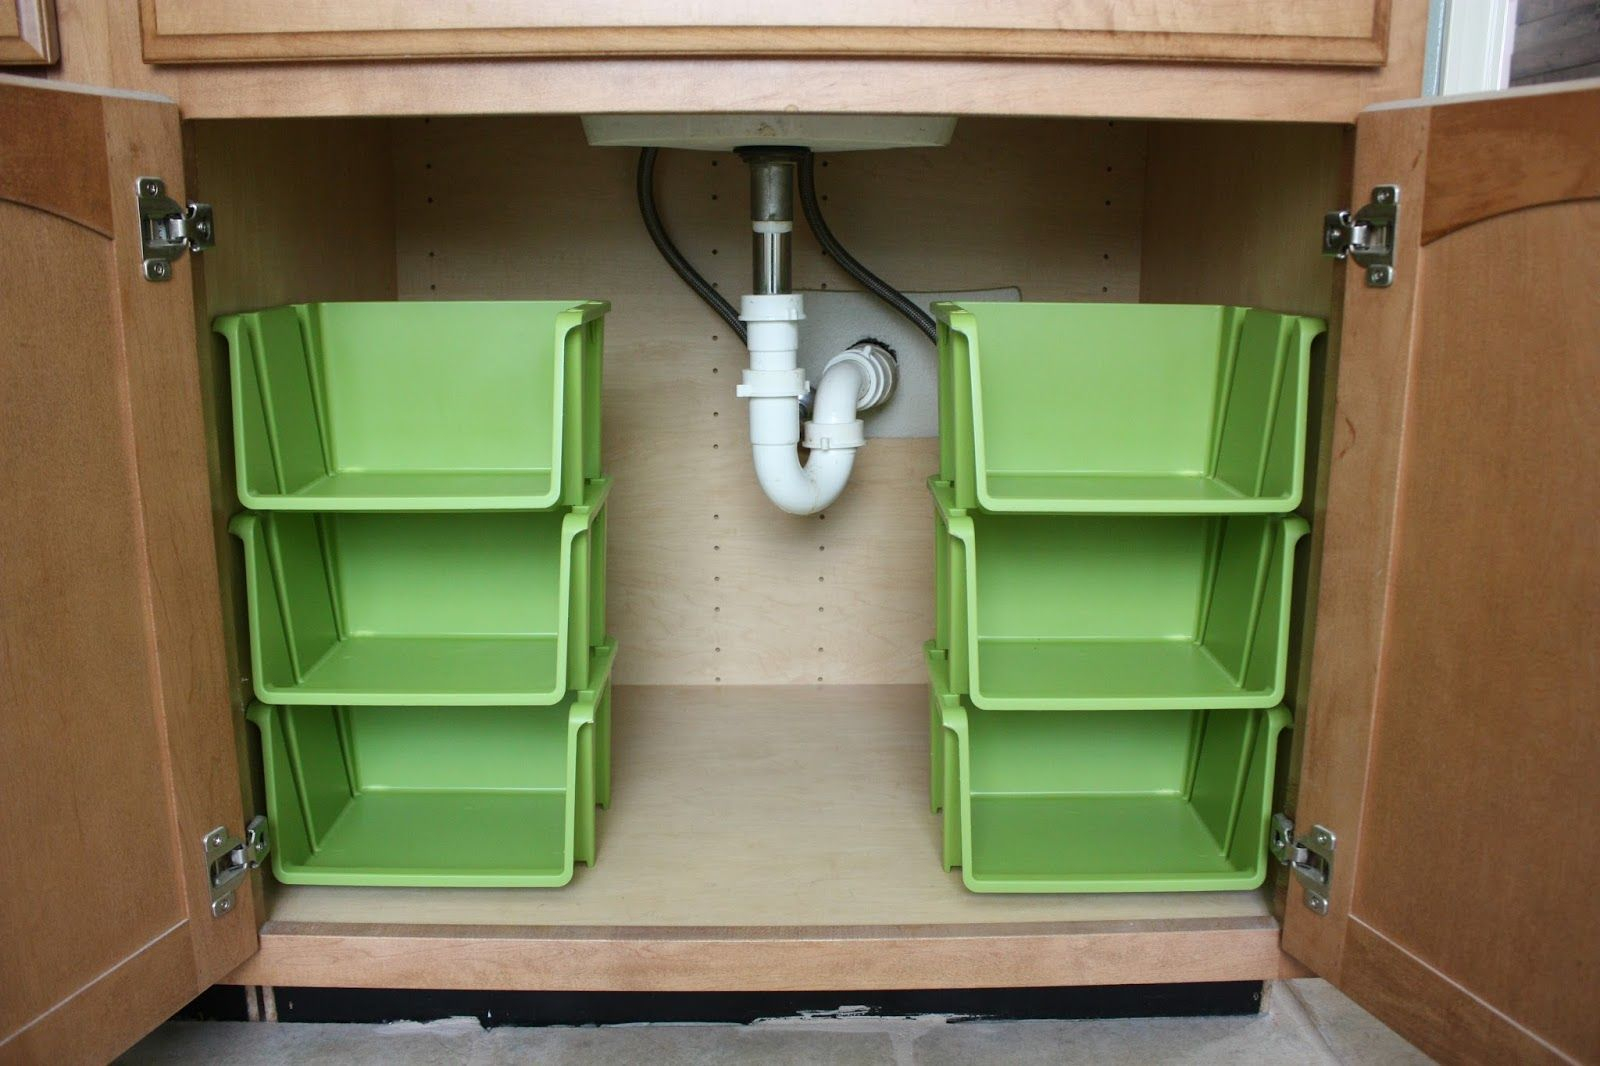 Show Just Green Storage Baskets Dollar Tree Storage I intended for proportions 1600 X 1066